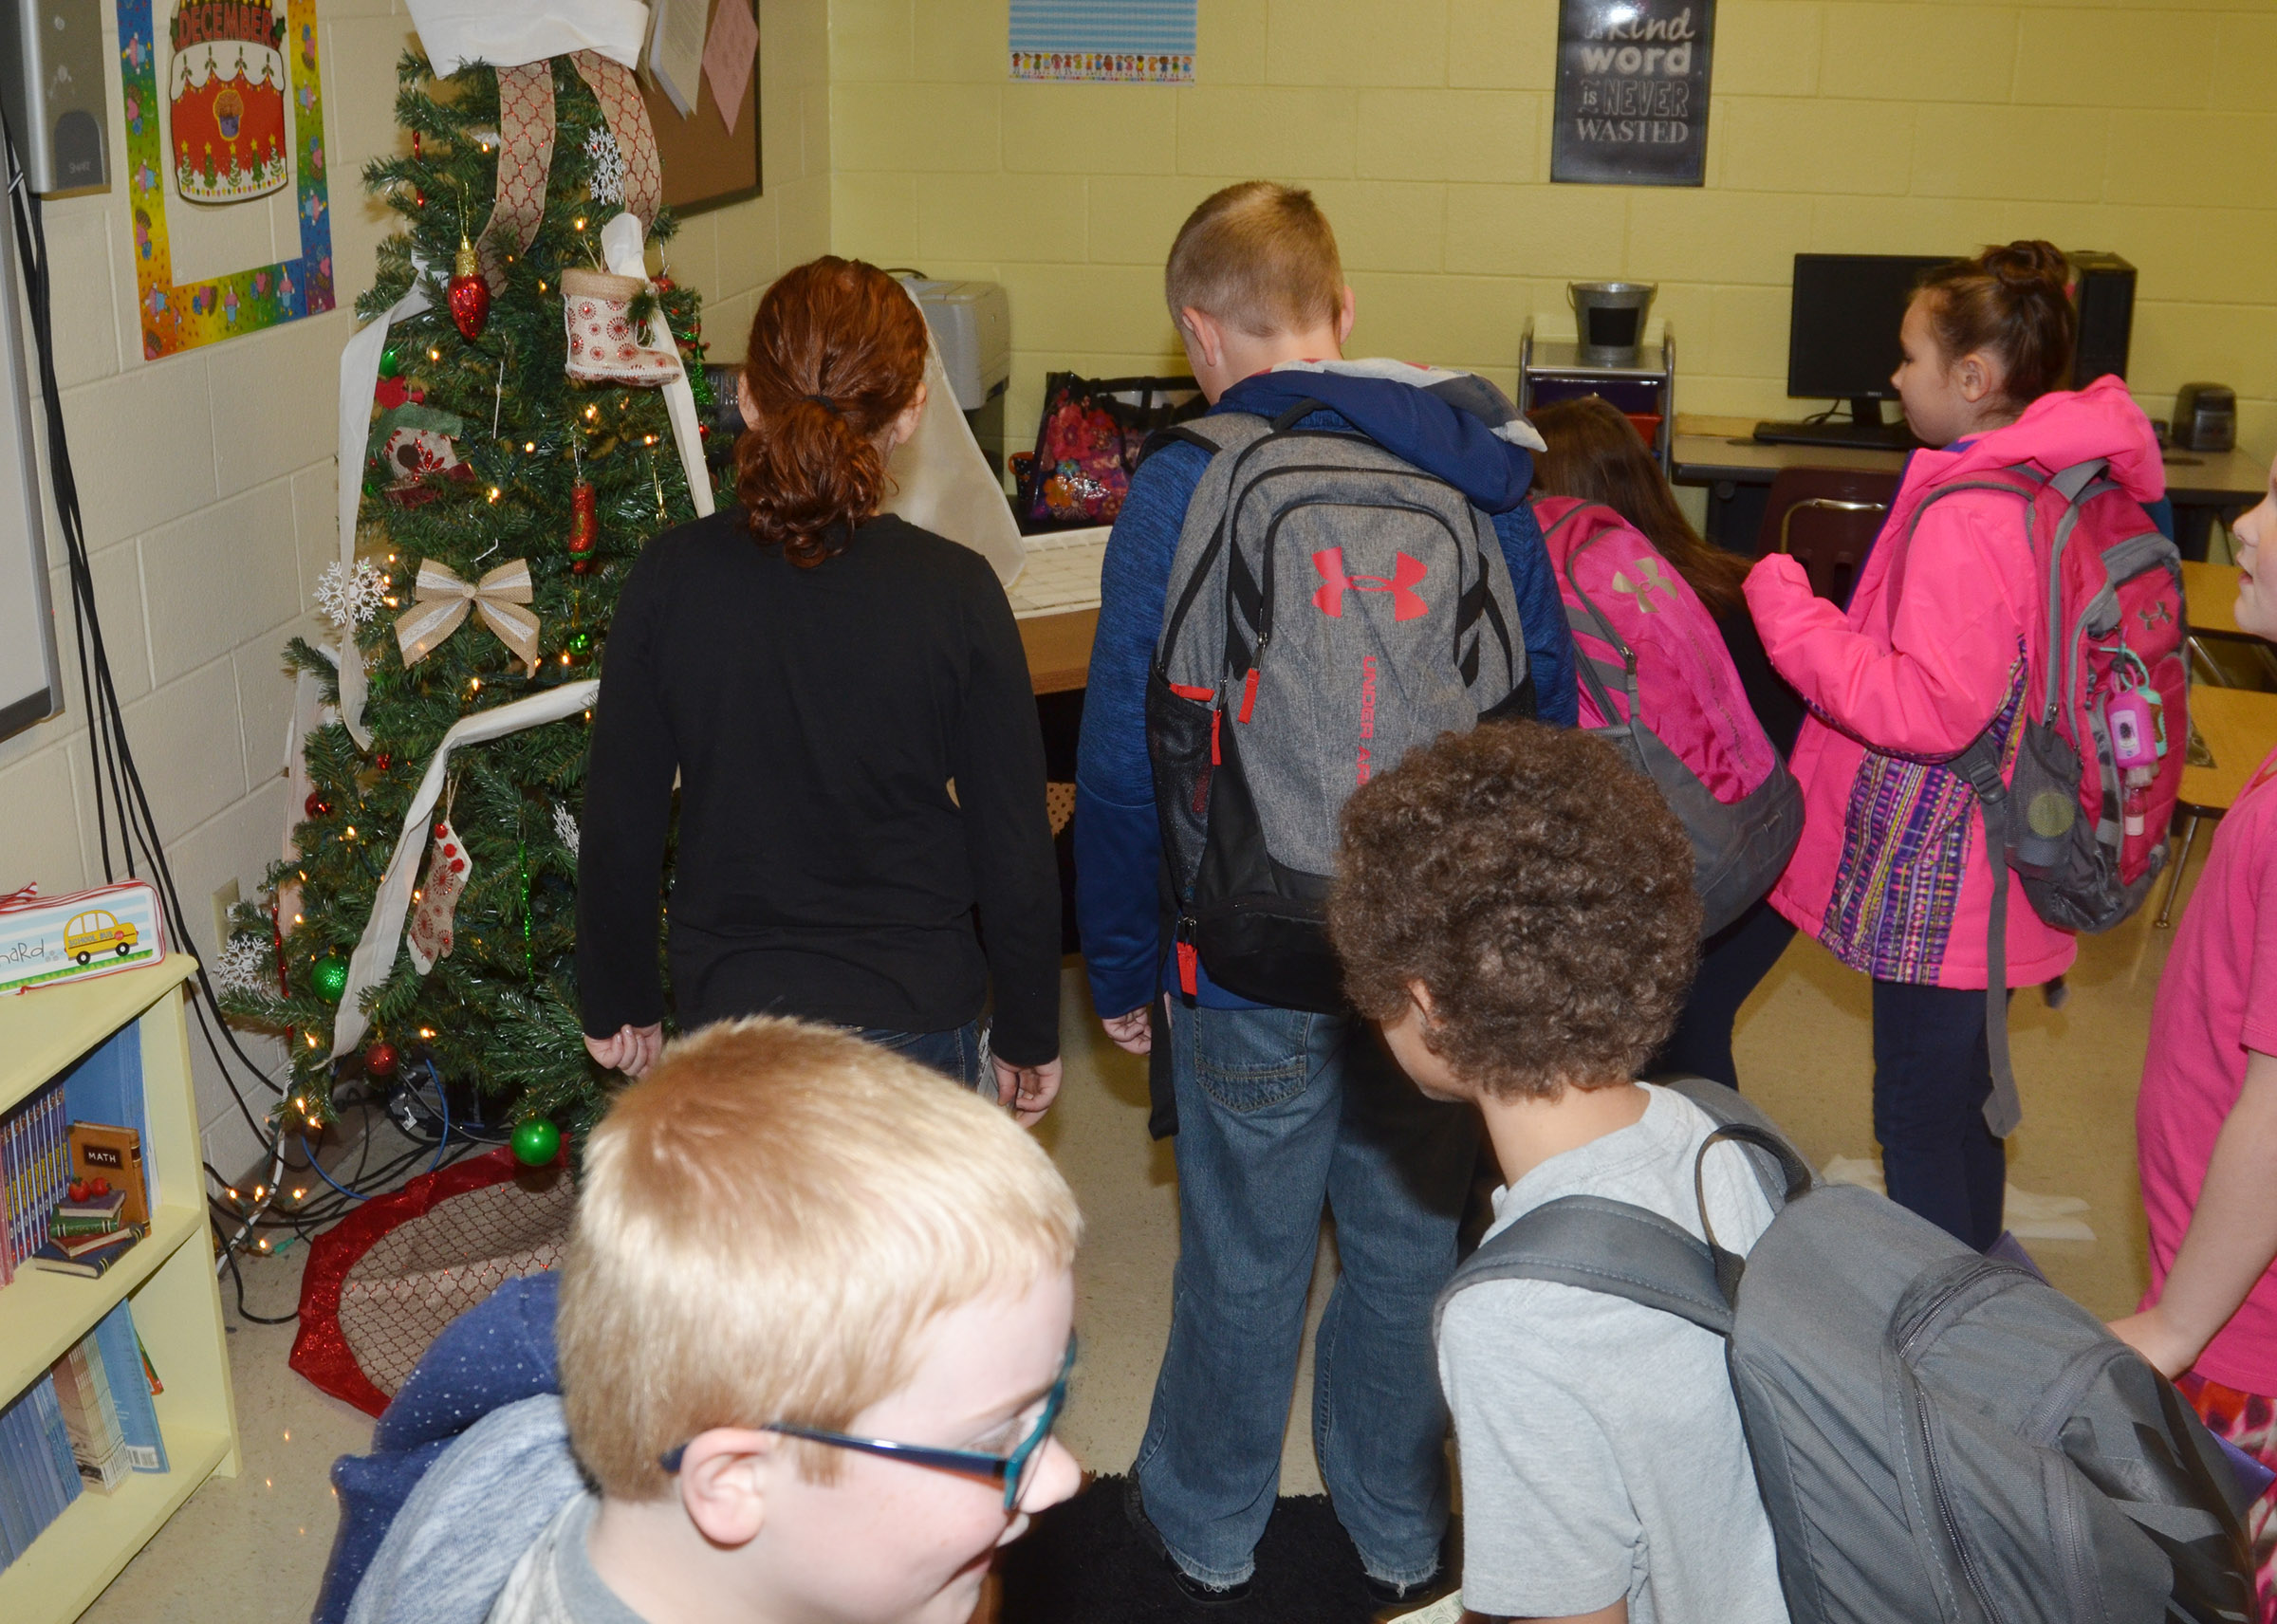 CES third-graders in Keri Richard's class came to school recently and found their elf had thrown toilet paper all over their classroom.